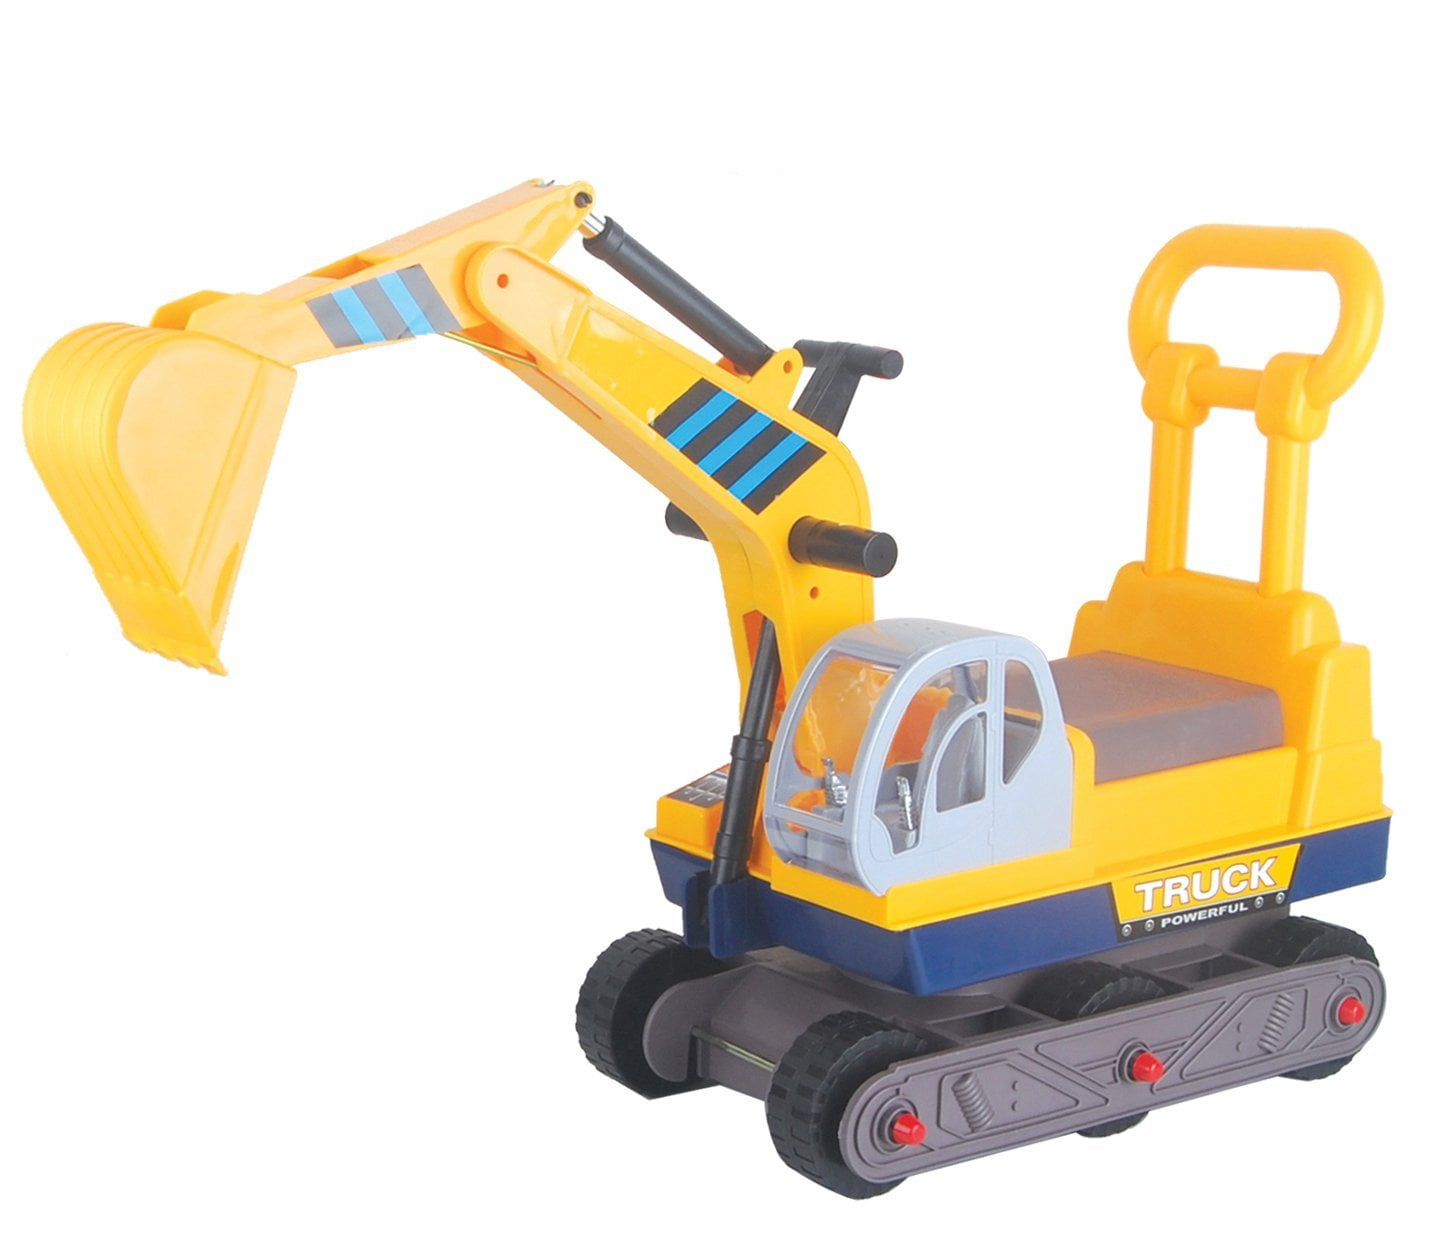 The Top 20 Best Ride On Construction Toys For Kids In 2017 ...